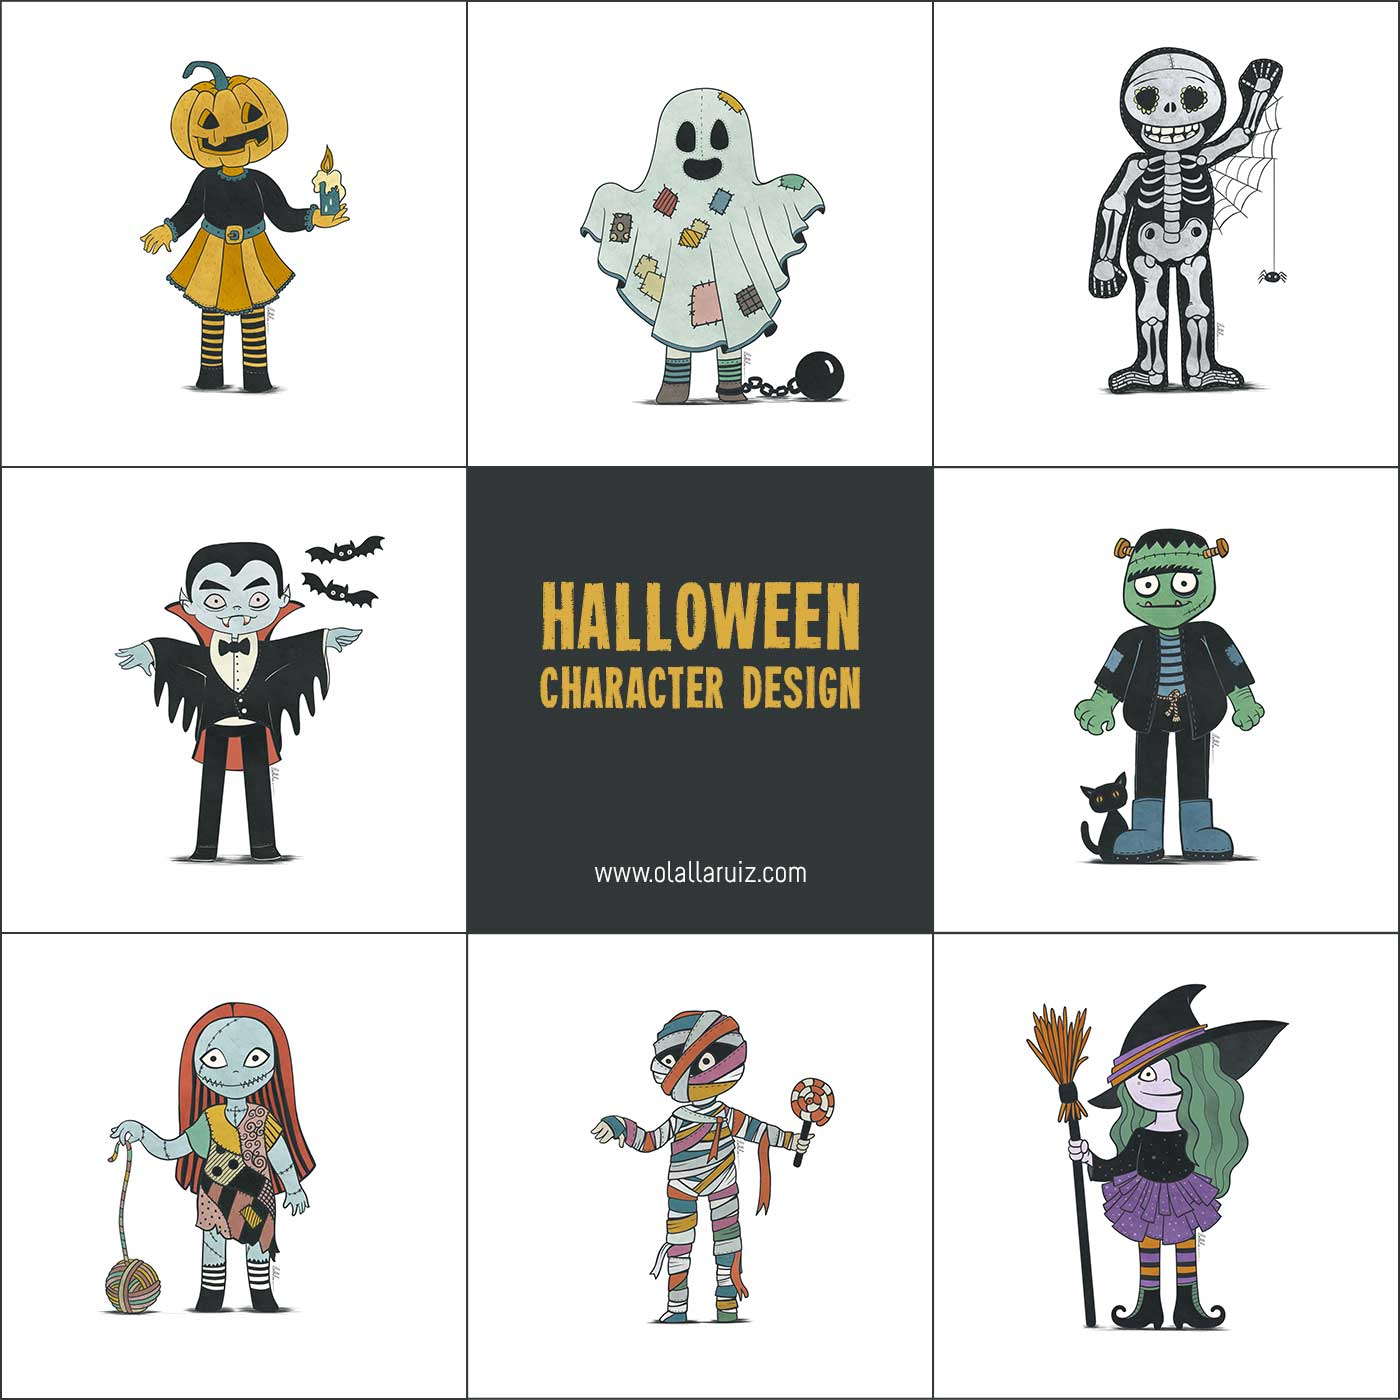 Halloween Character Design: pumpkin, ghost, skeleton, vampire, frankenstein, sally, mummy, witch